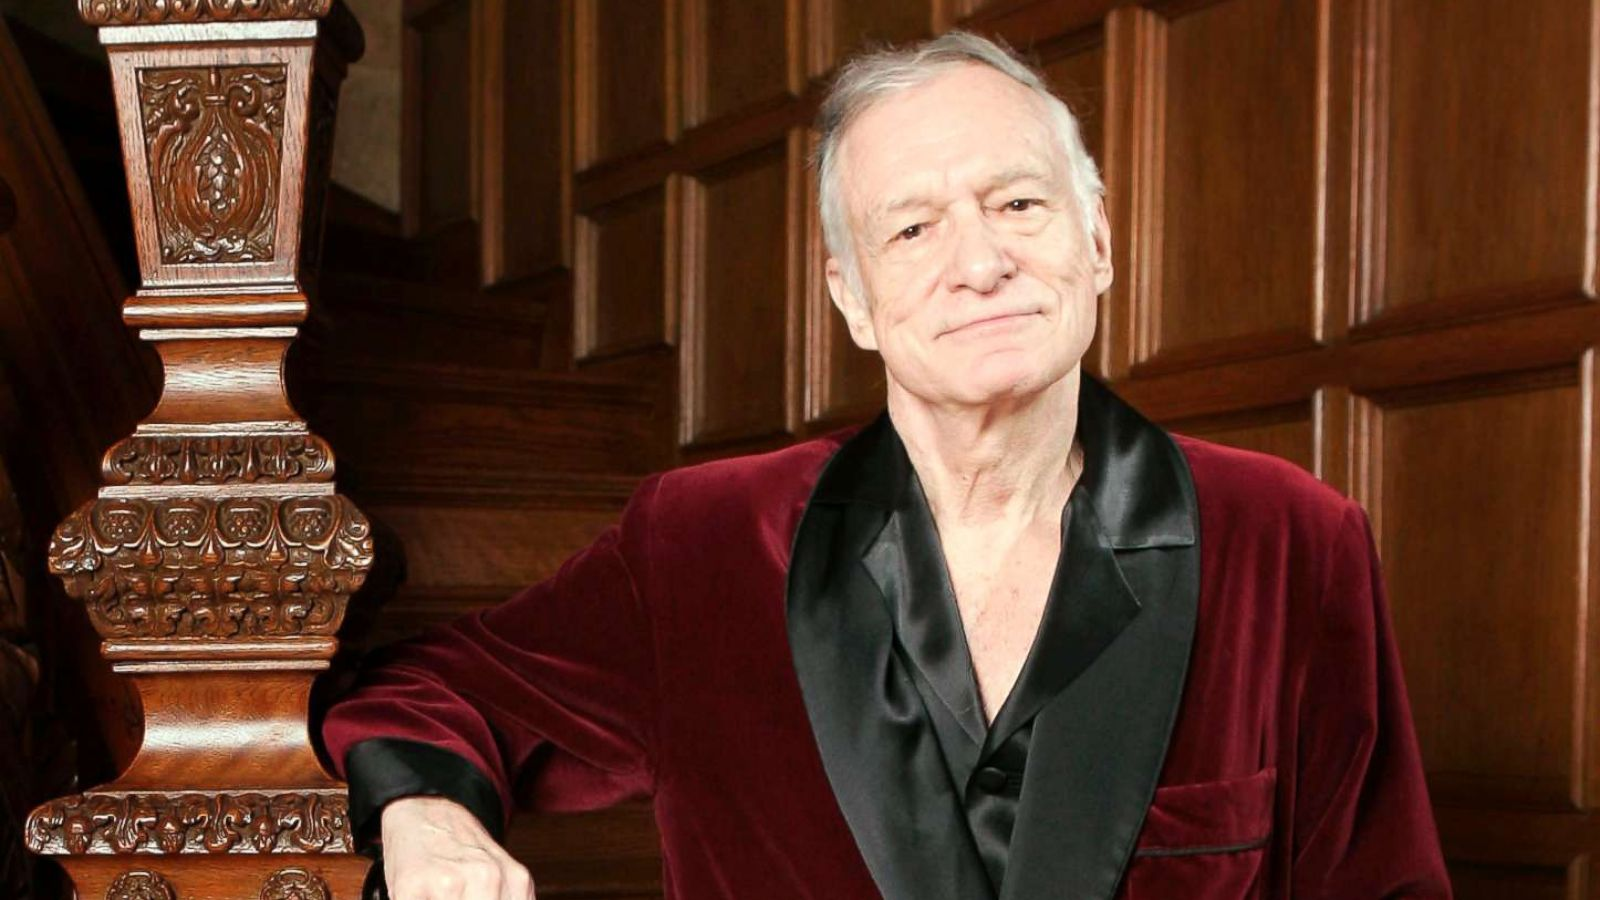 Hugh Hefner Playboy Founder And Pop Culture Icon Dead At 91 Abc News